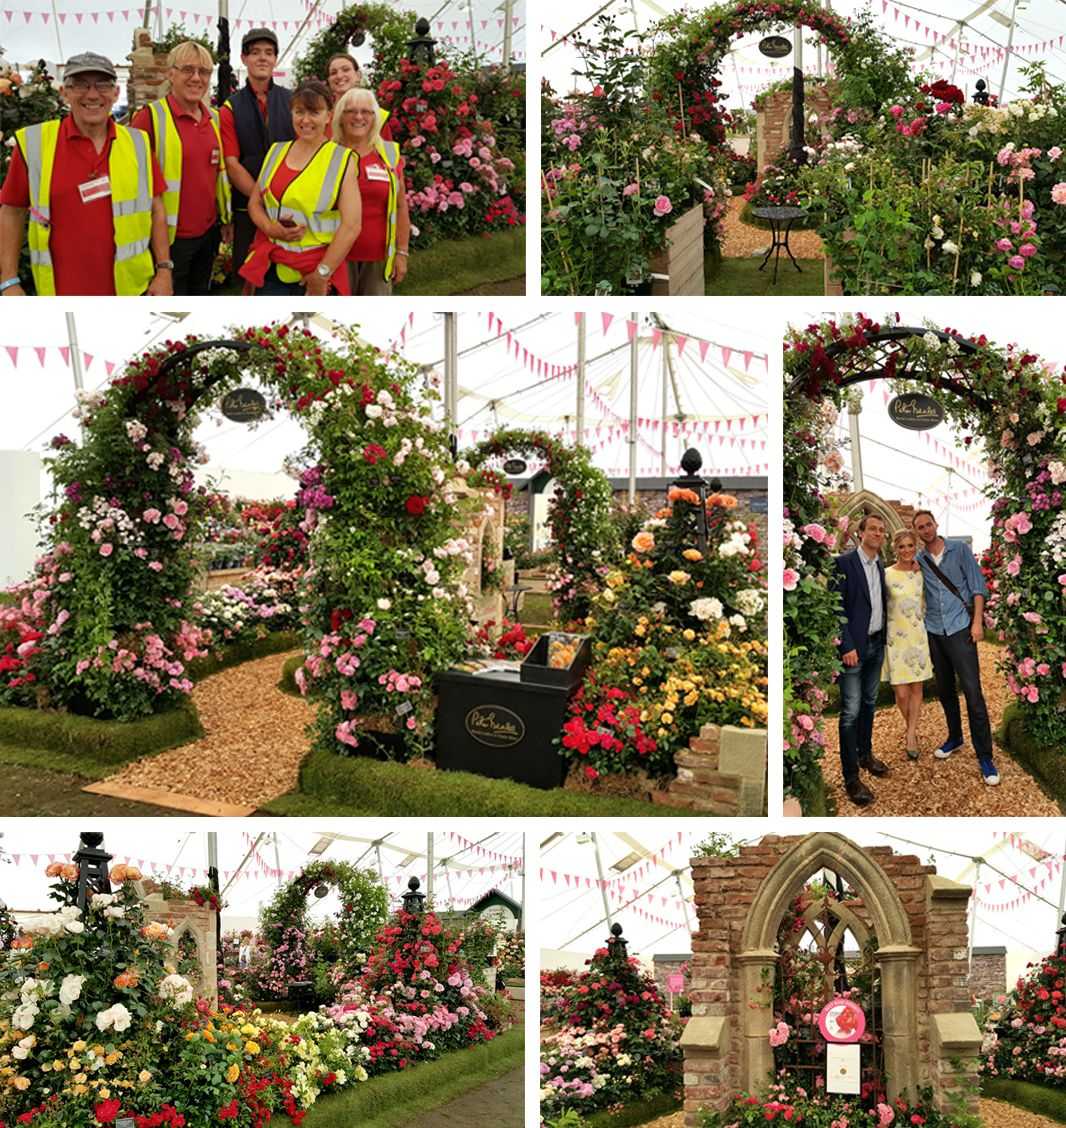 Hampton court flower show voucher codes 2015 - Hampton court flower show ...